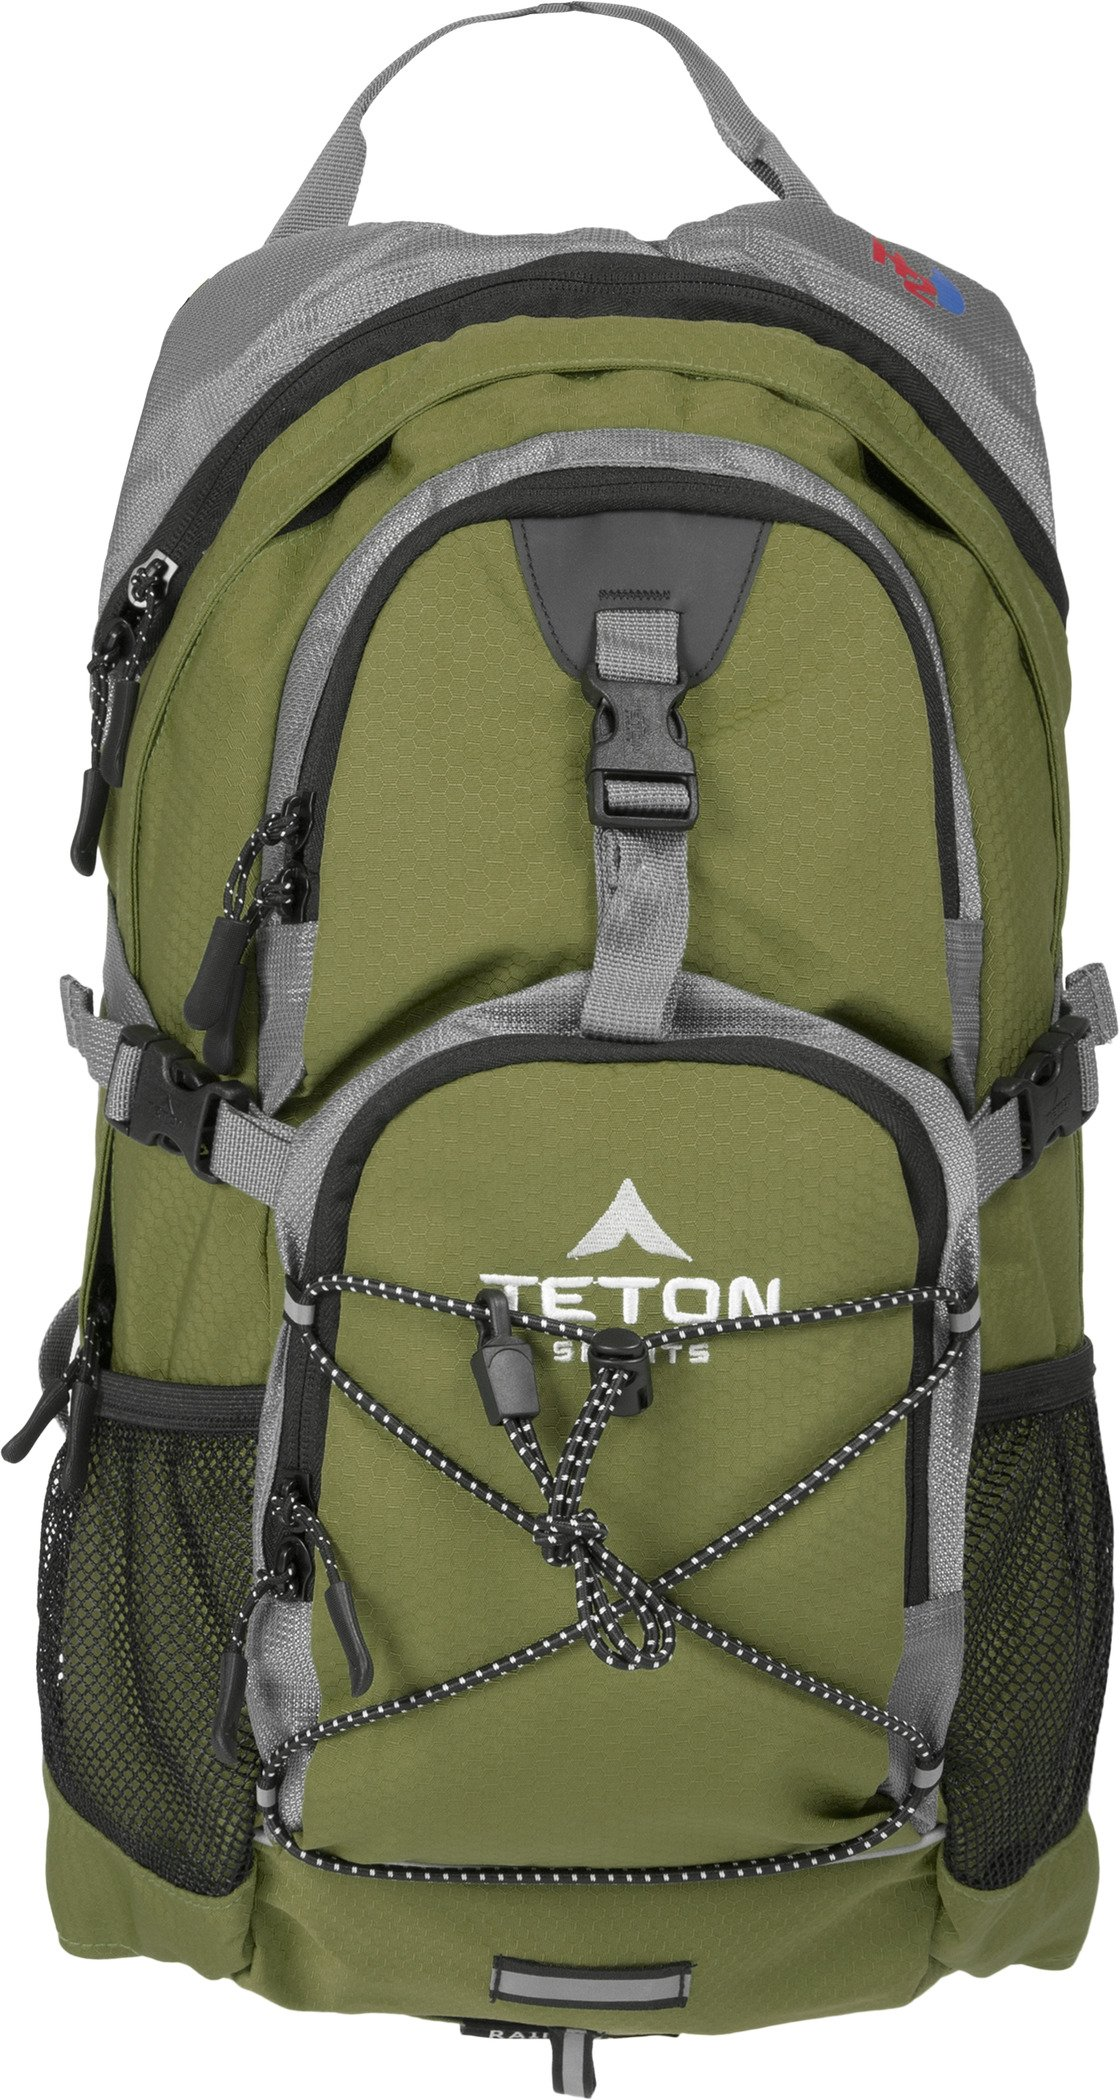 TETON Sports Oasis 1100 Hydration Pack | Free 2-Liter Hydration Bladder | Backpack design great for Hiking, Running, Cycling, and Climbing | Green by TETON Sports